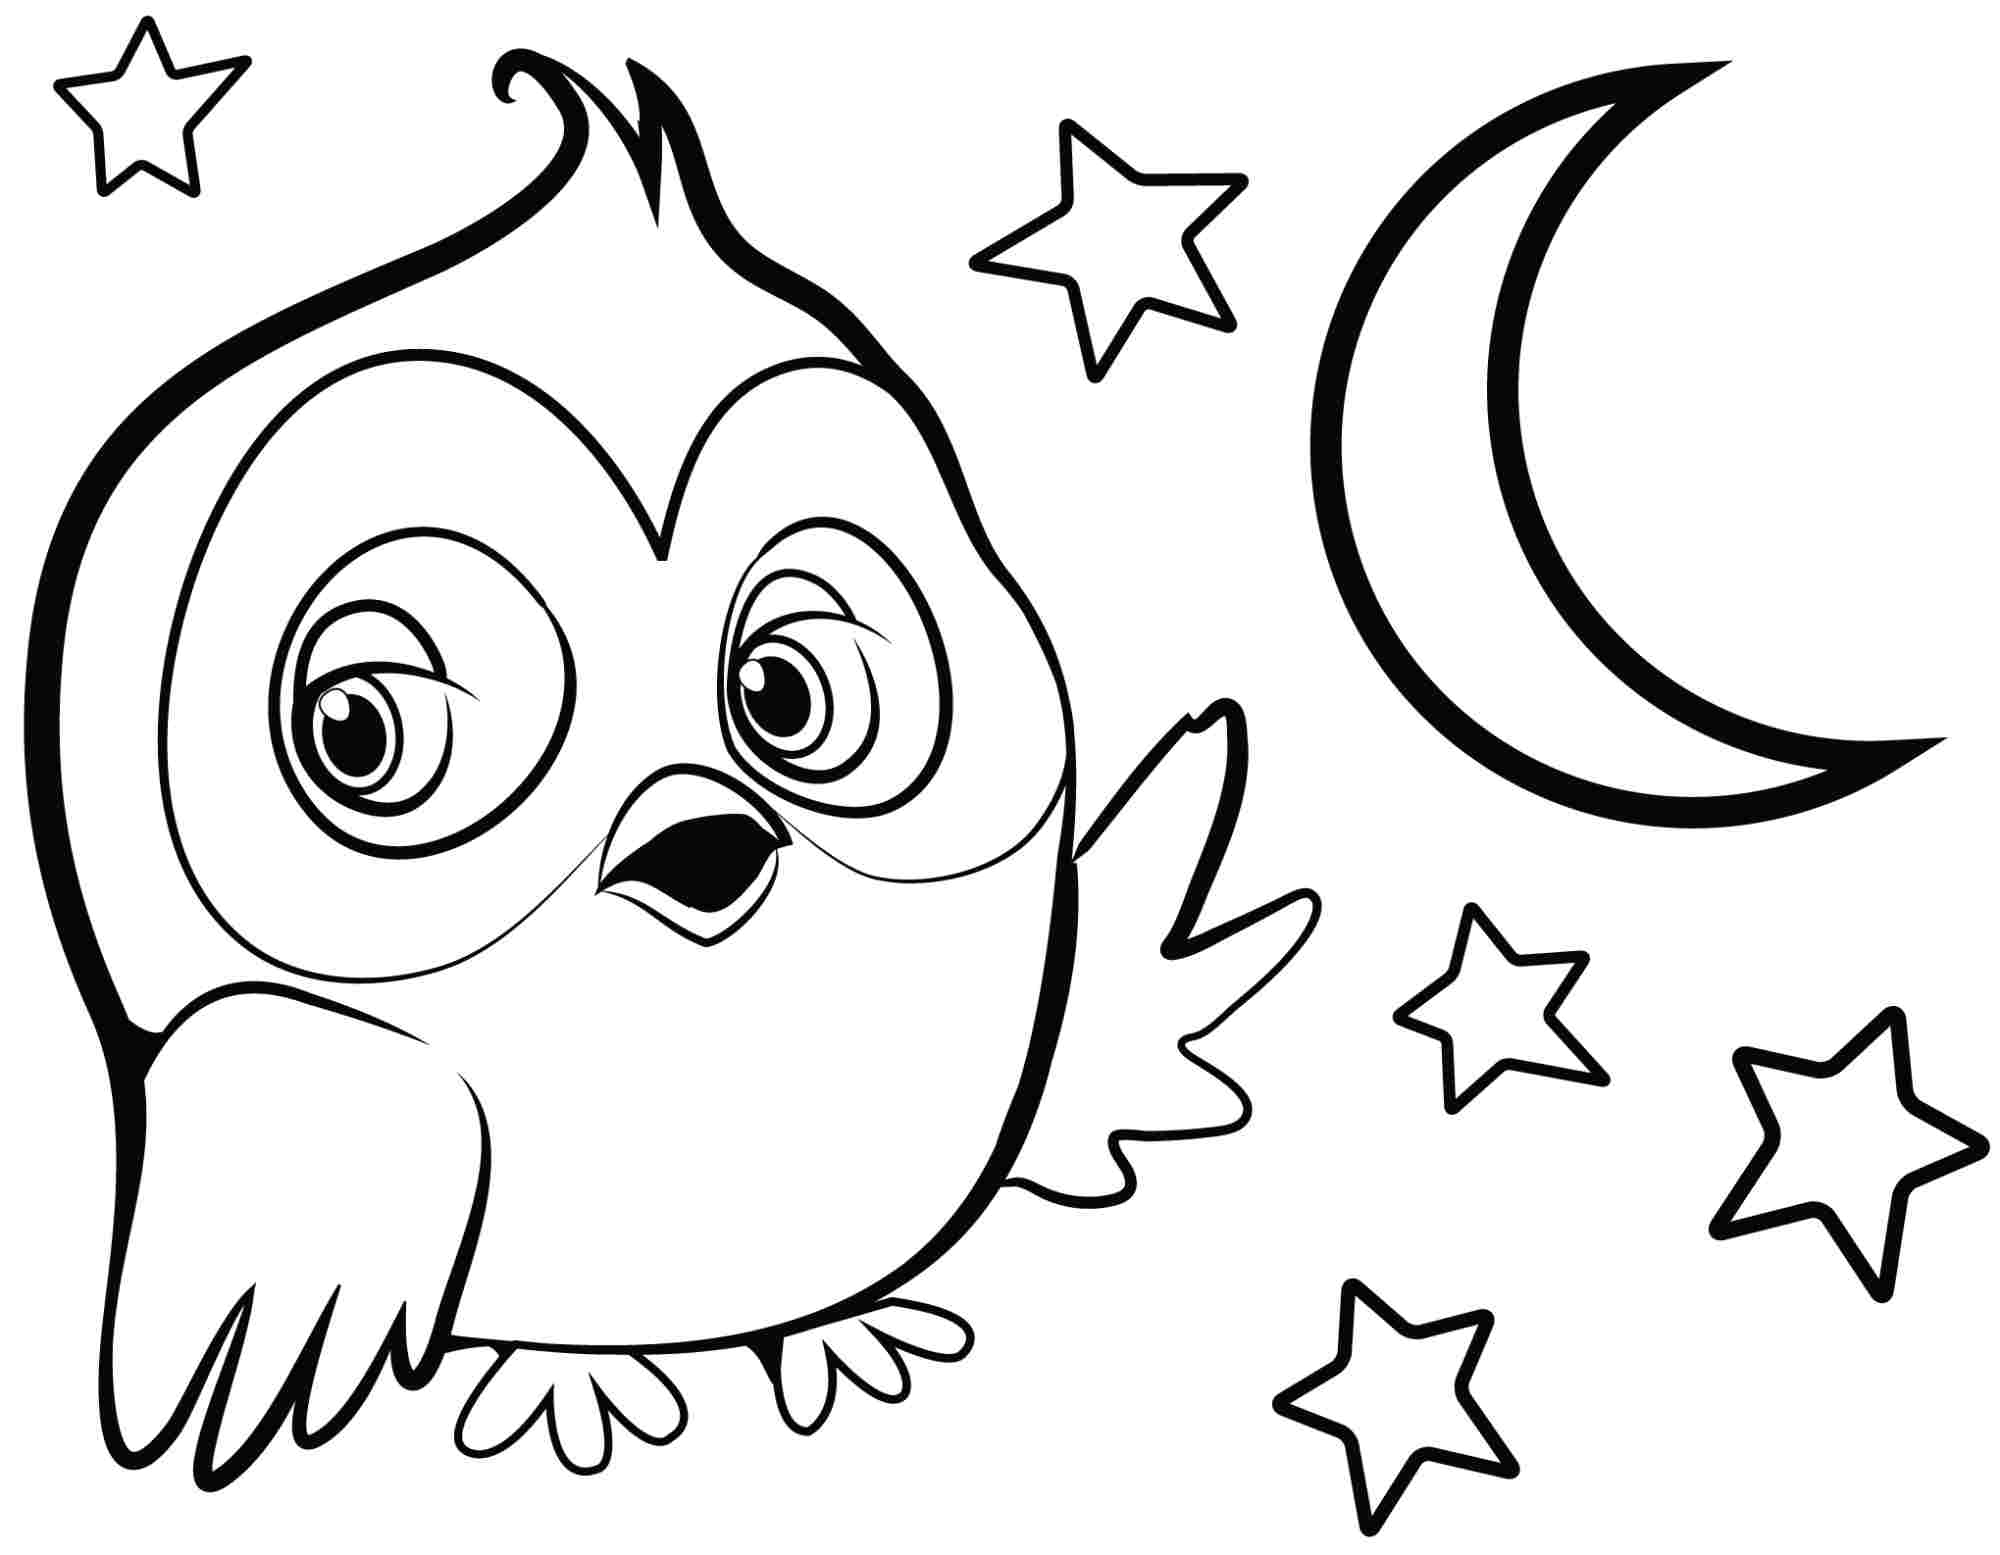 free animal coloring pages for kids free printable farm animal coloring pages for kids coloring kids for free animal pages